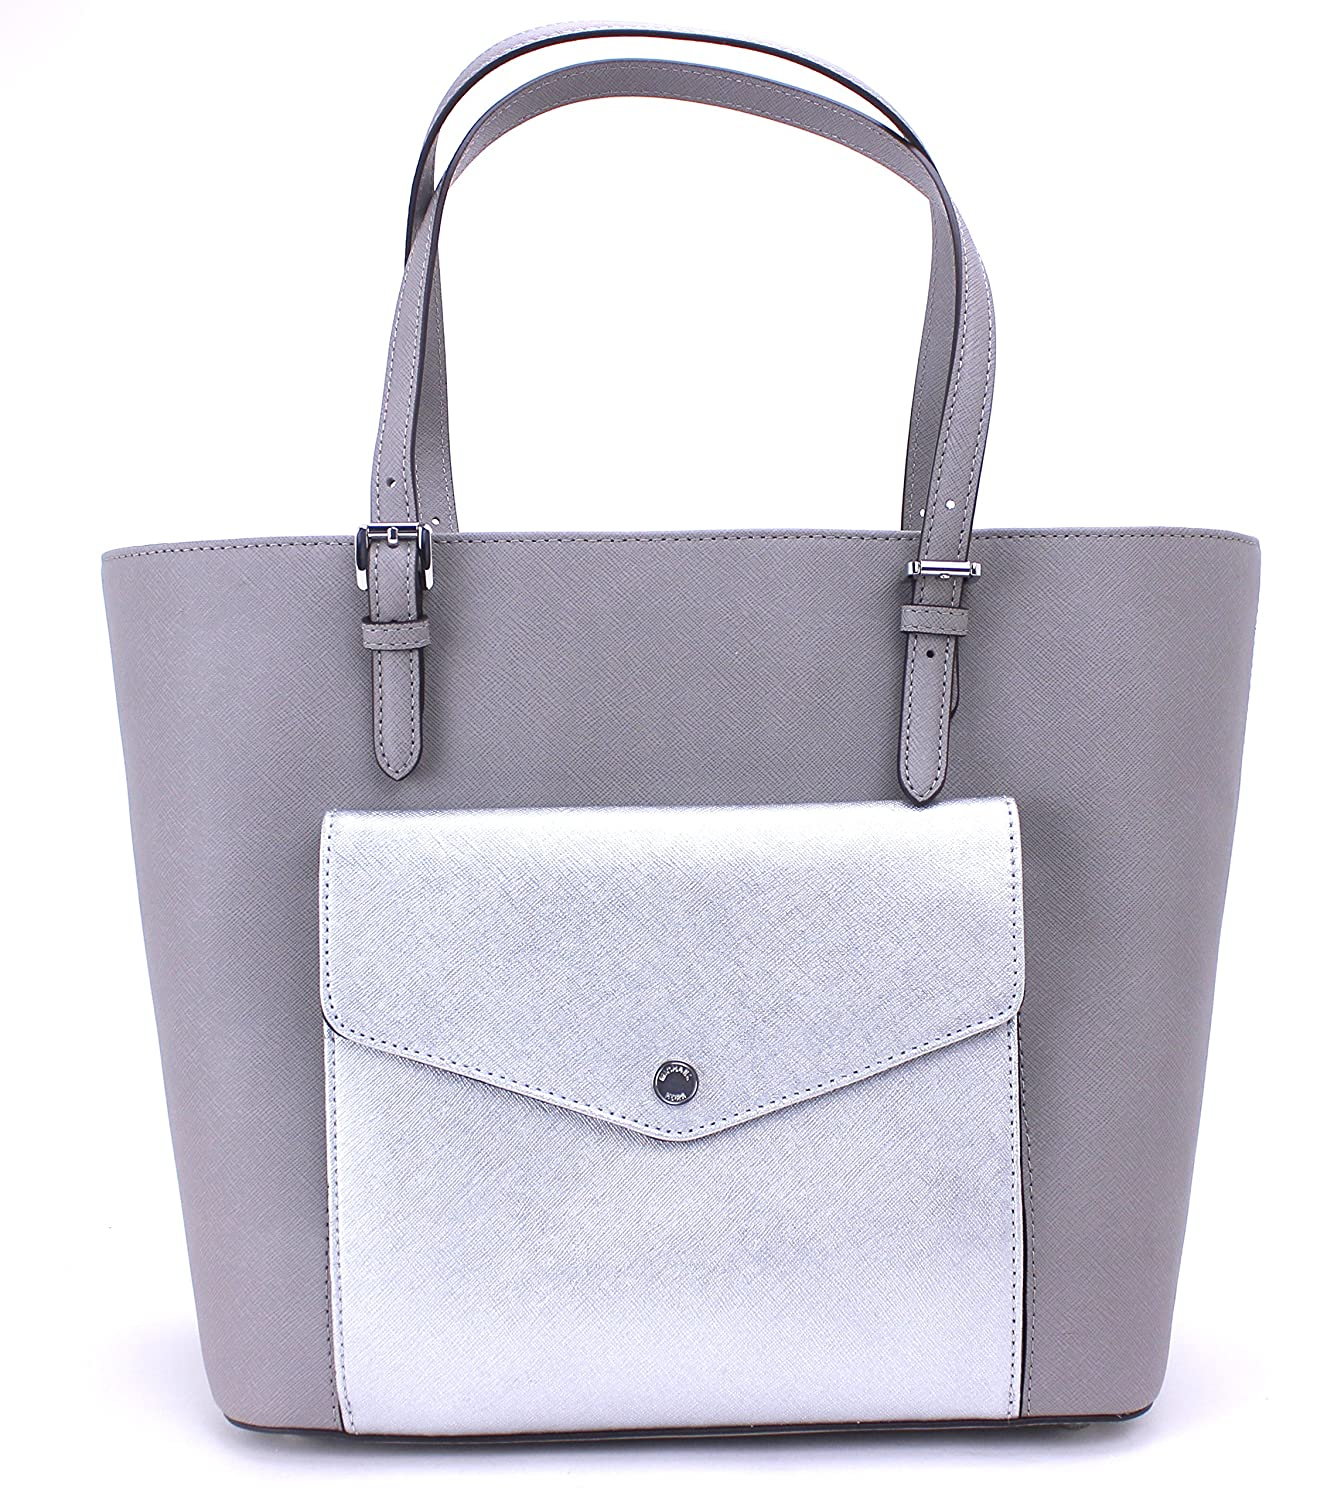 0b3823bdac6185 Amazon.com: Michael Kors Jet Set Large Pocket MF Tote Saffiano Leather  (Pearl Grey/Silver): Shoes